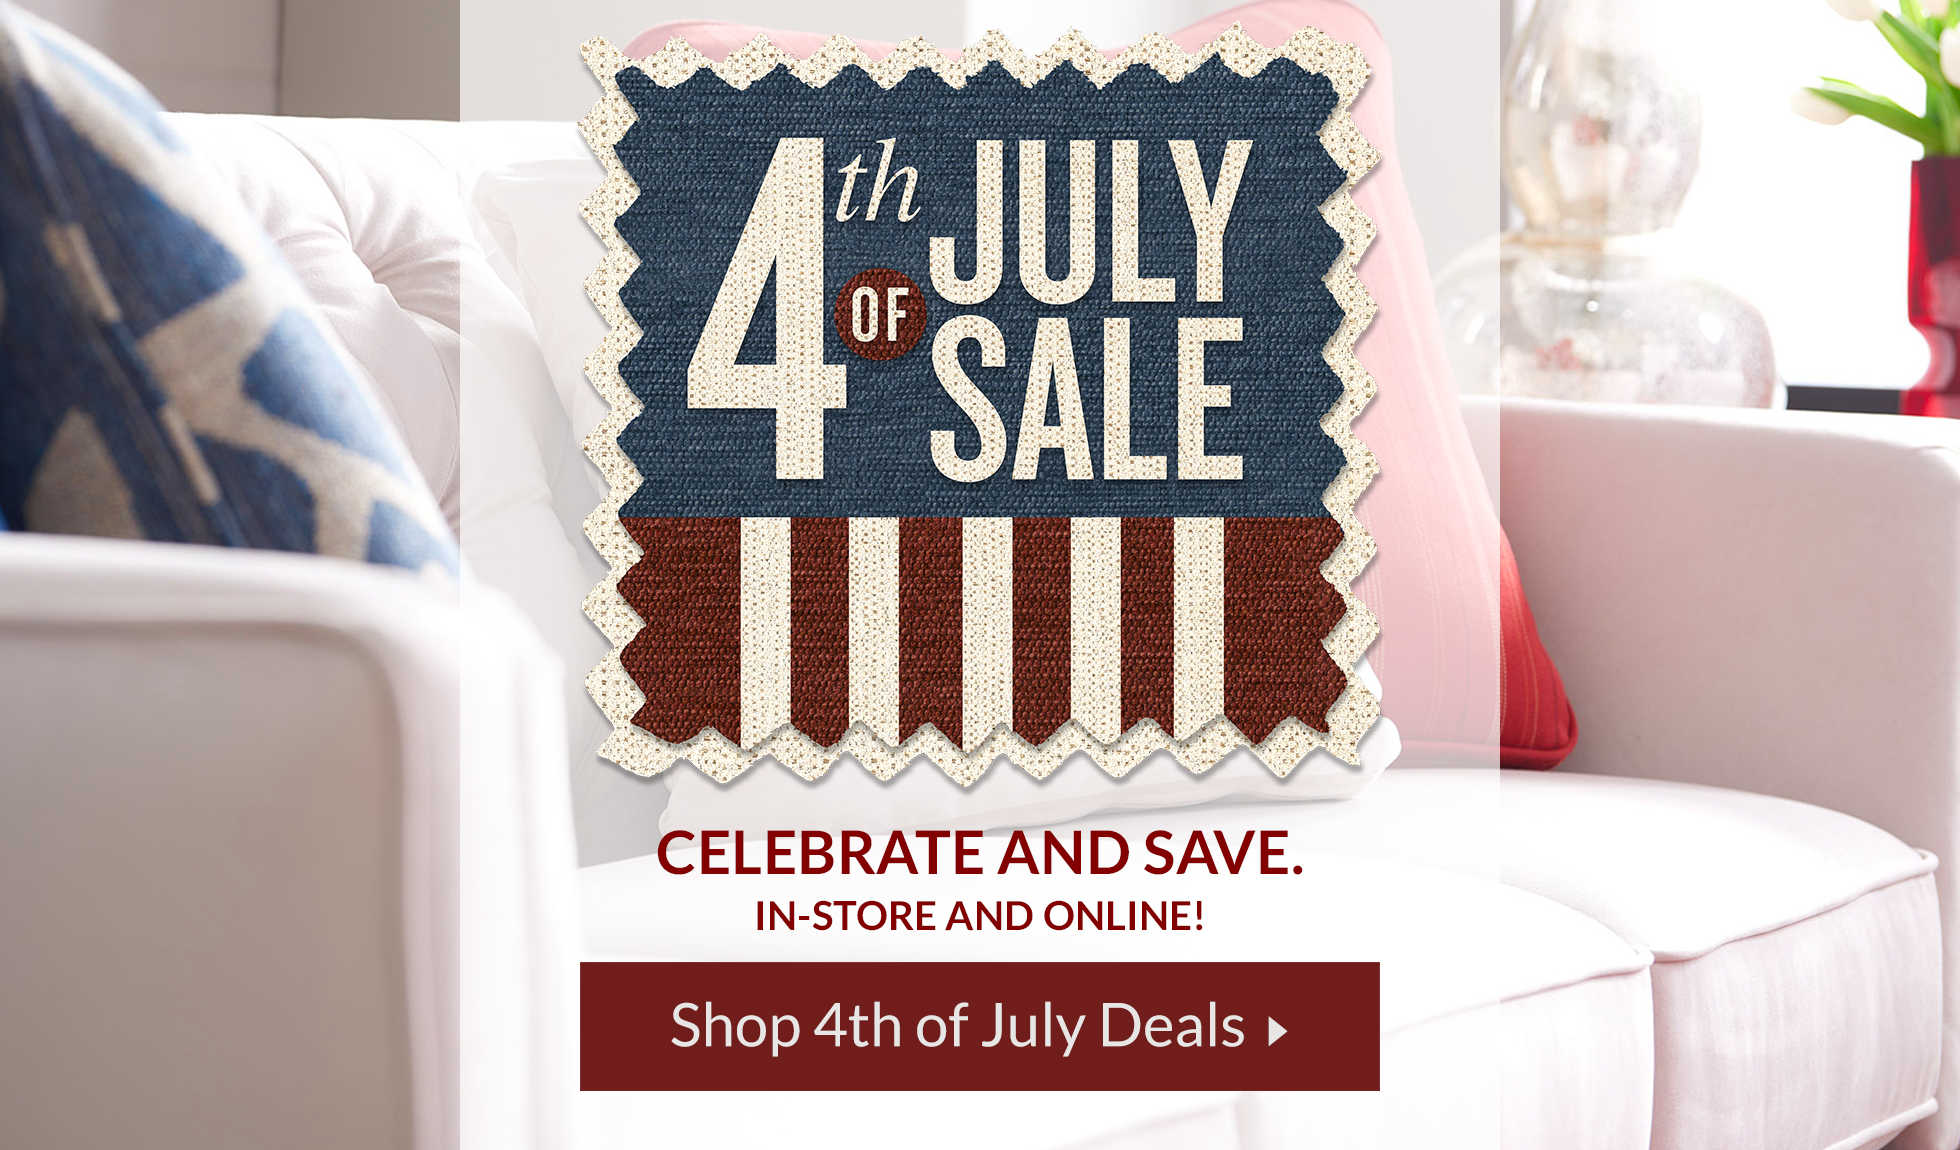 Celebrate in-store and online. Shop 4th of July deals.